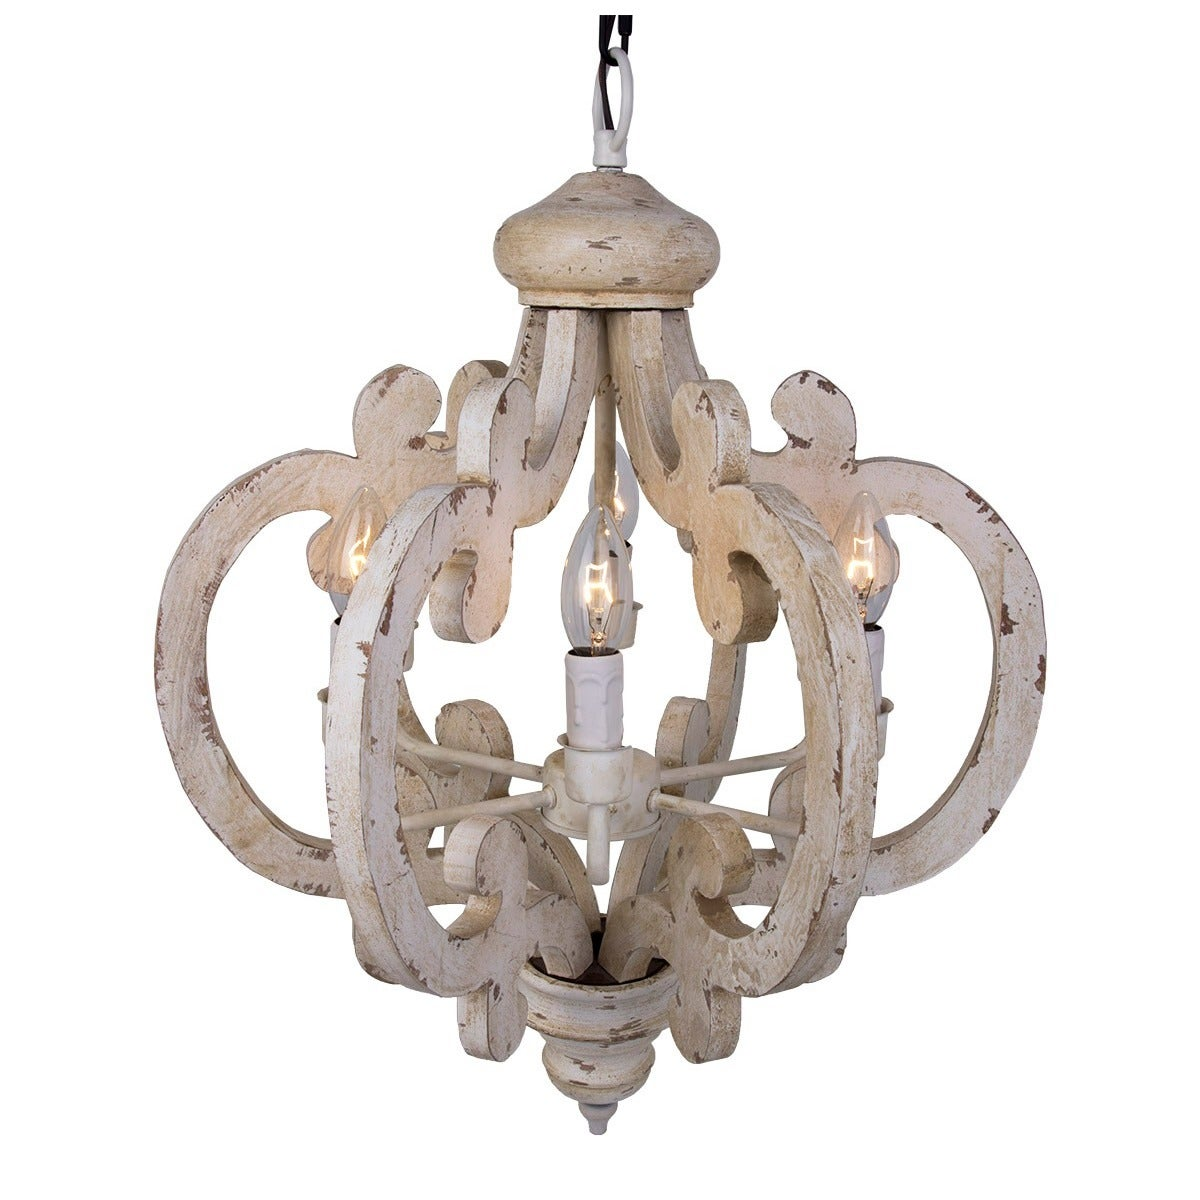 Shop 6-light Distressed Antique White Wooden Chandelier - Free Shipping  Today - Overstock.com - 18229090 - Shop 6-light Distressed Antique White Wooden Chandelier - Free